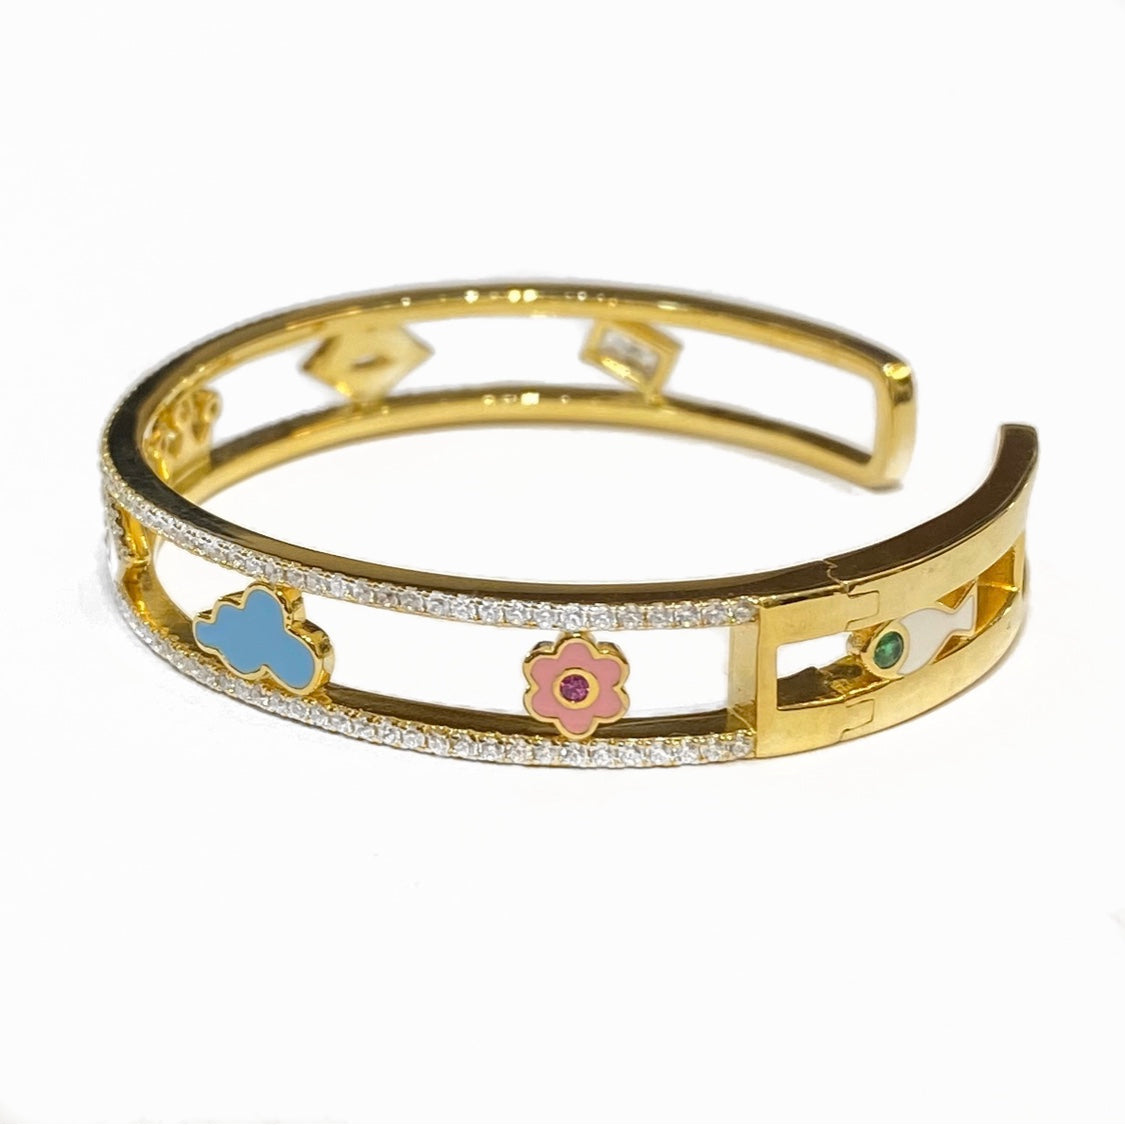 DREAMY BANGLE